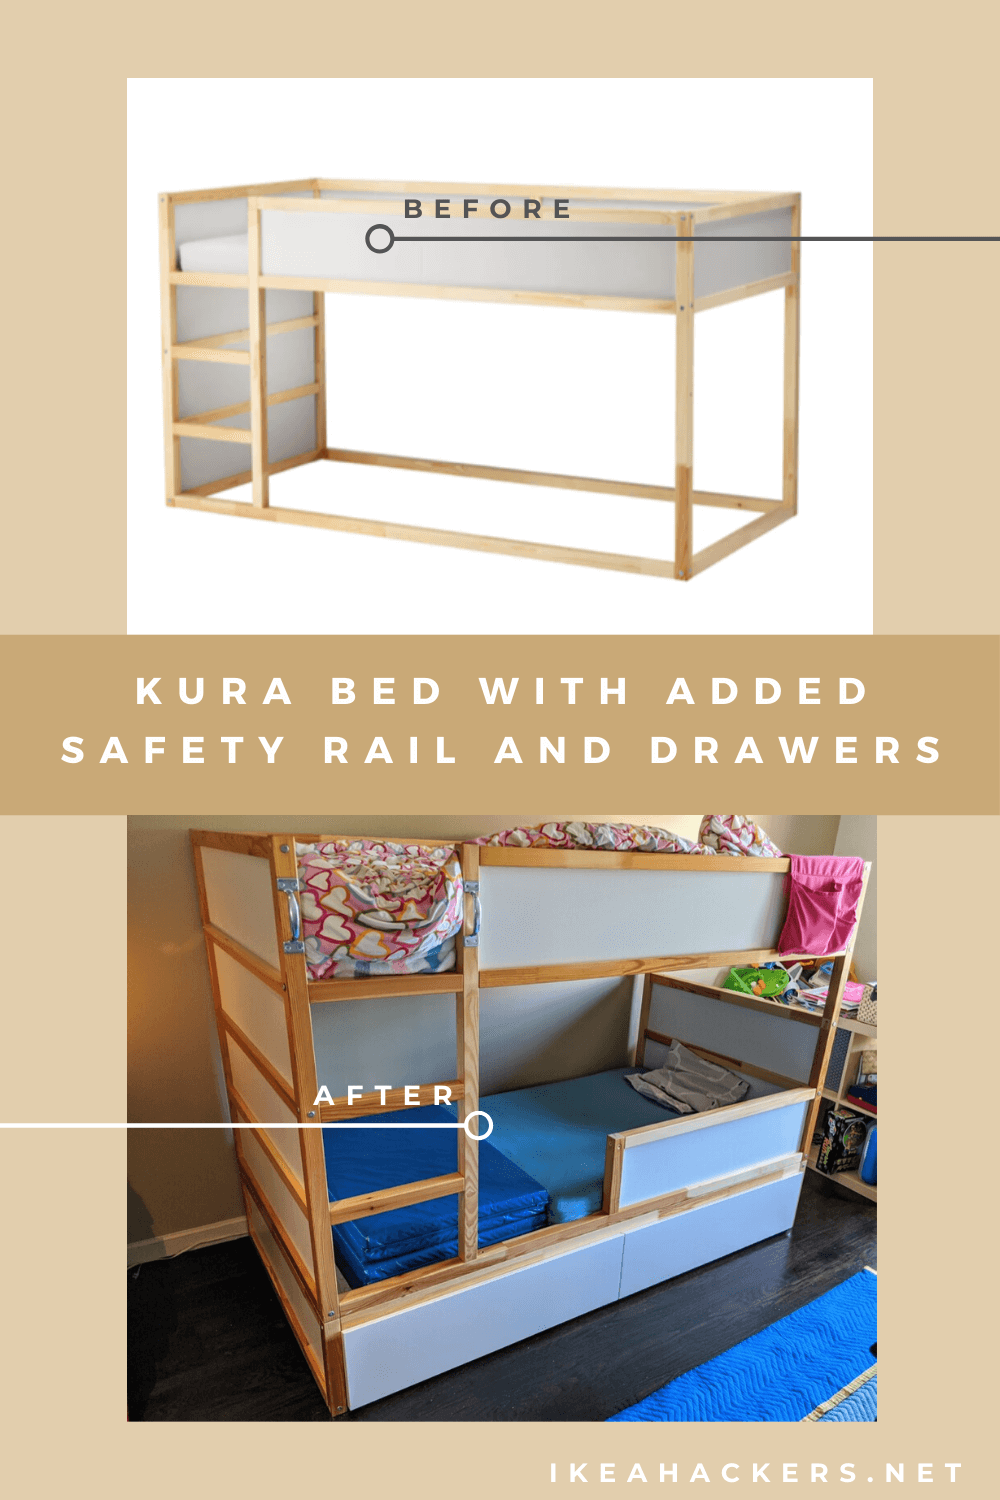 Amped Up Kura Bed With Drawers And Safety Rail Ikea Hackers Toddler Bedroom